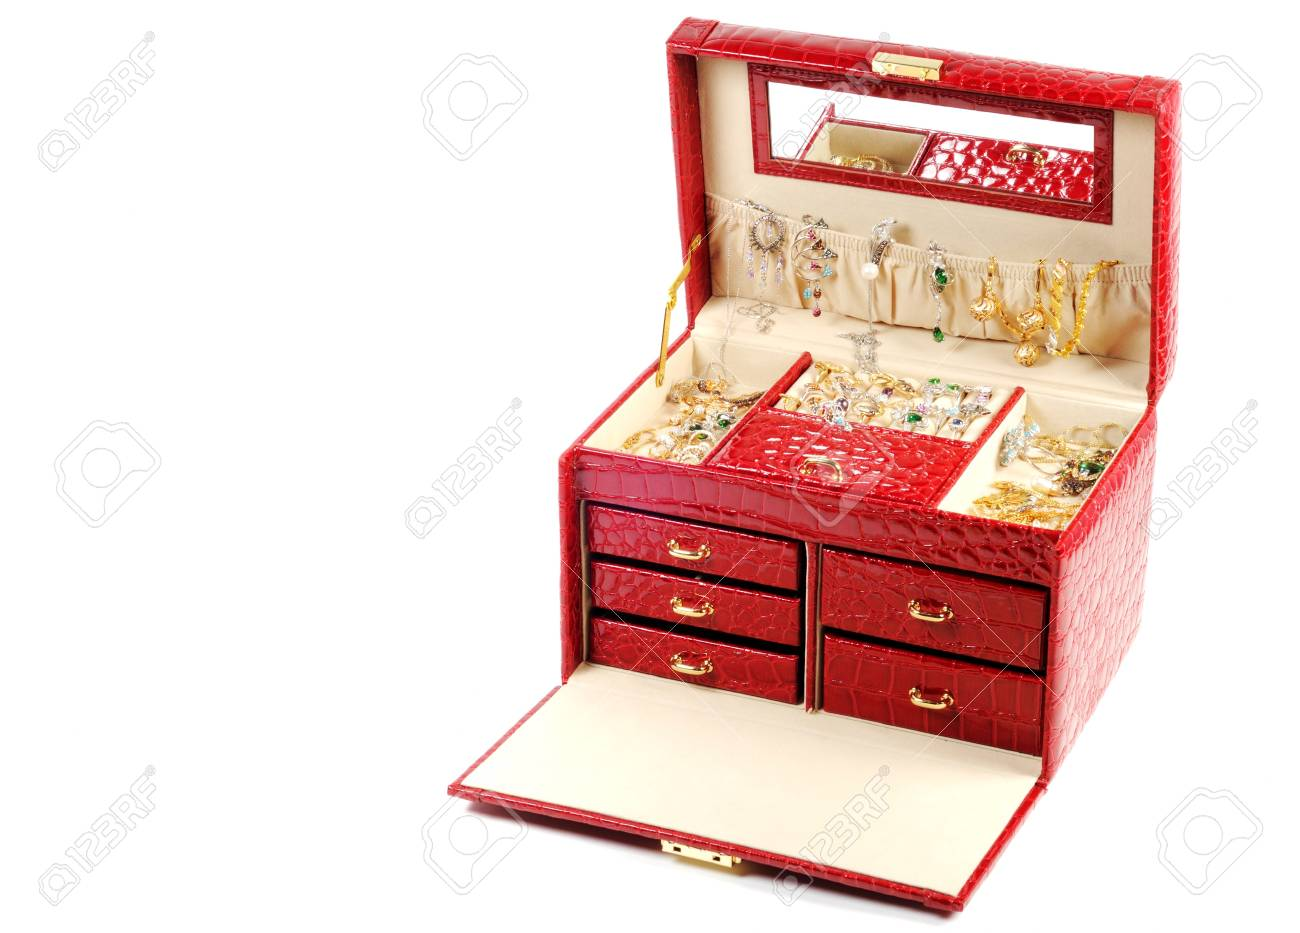 An open jewlery box with gold and platinum  jewelry inside  on a white background Stock Photo - 12184766